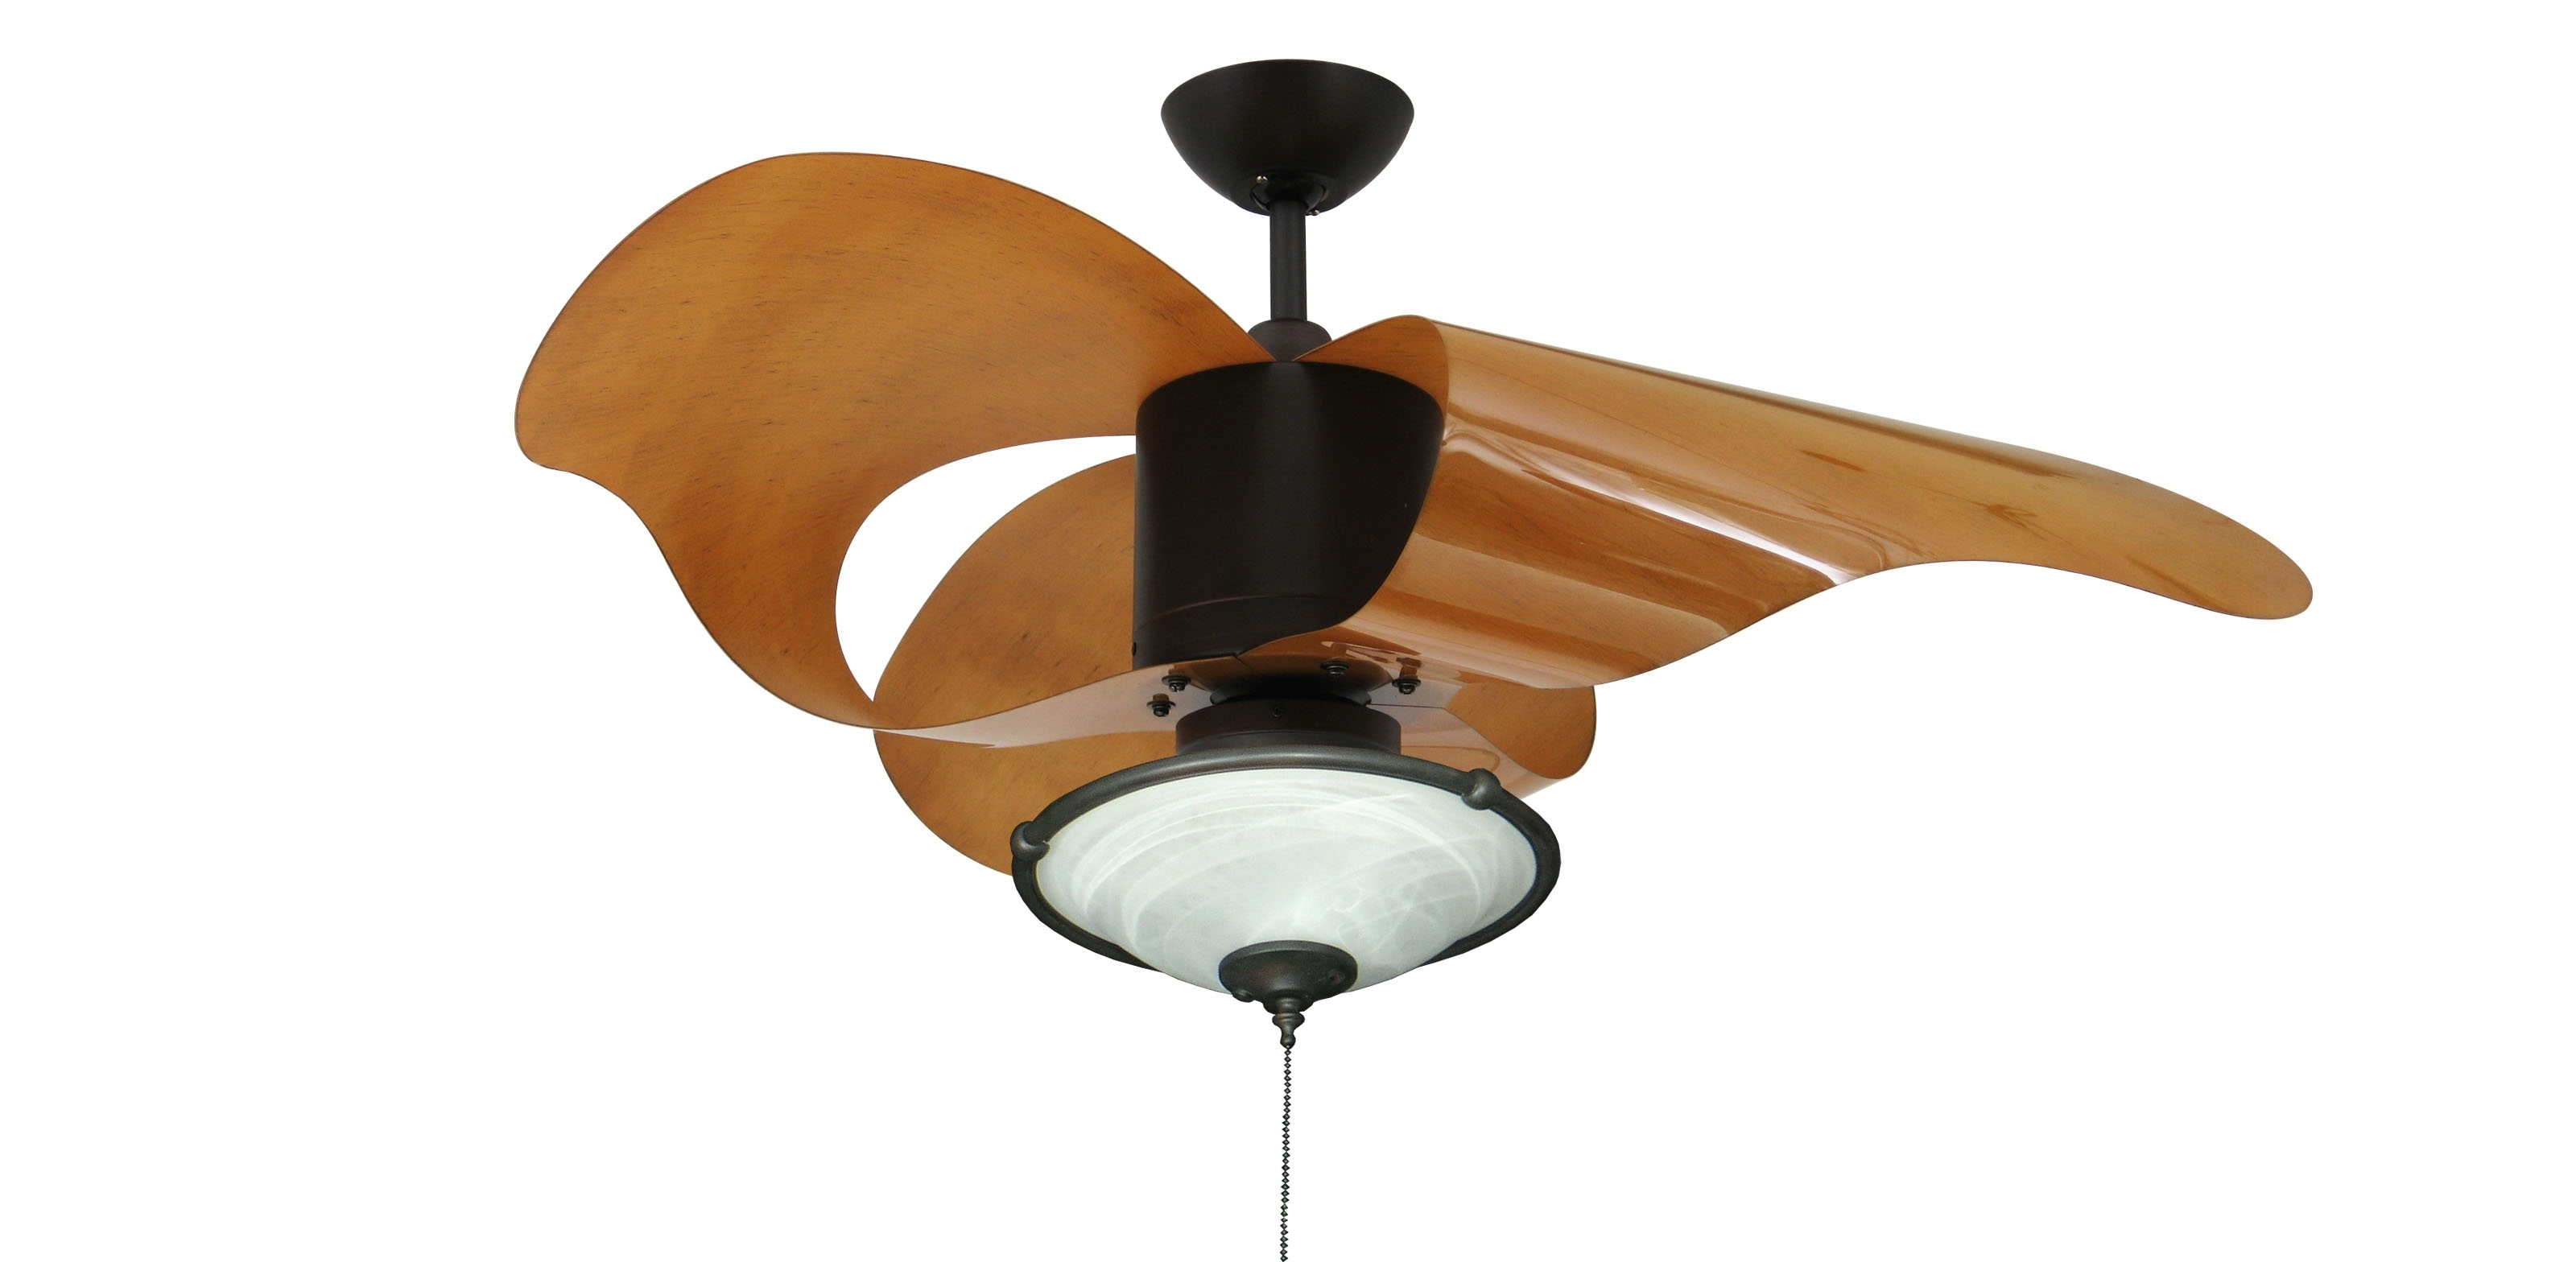 Modest Unique Big Unusual Ceiling Fans With Lights In Current Unique Outdoor Ceiling Fans With Lights (View 3 of 20)